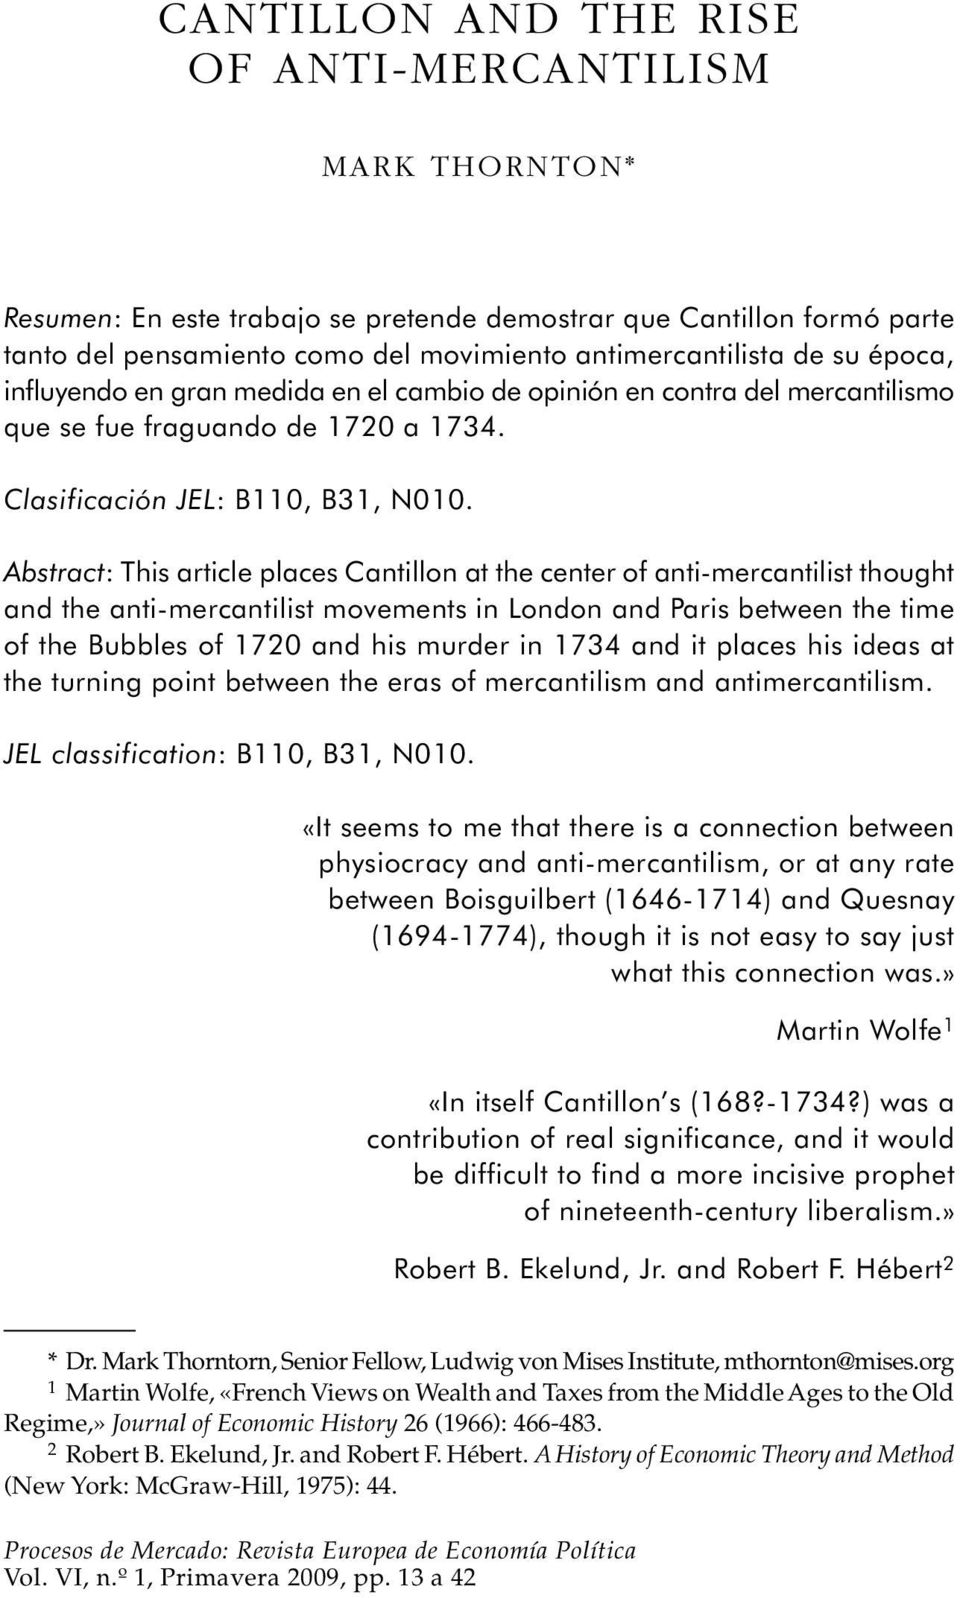 Abstract: This article places Cantillon at the center of anti-mercantilist thought and the anti-mercantilist movements in London and Paris between the time of the Bubbles of 1720 and his murder in